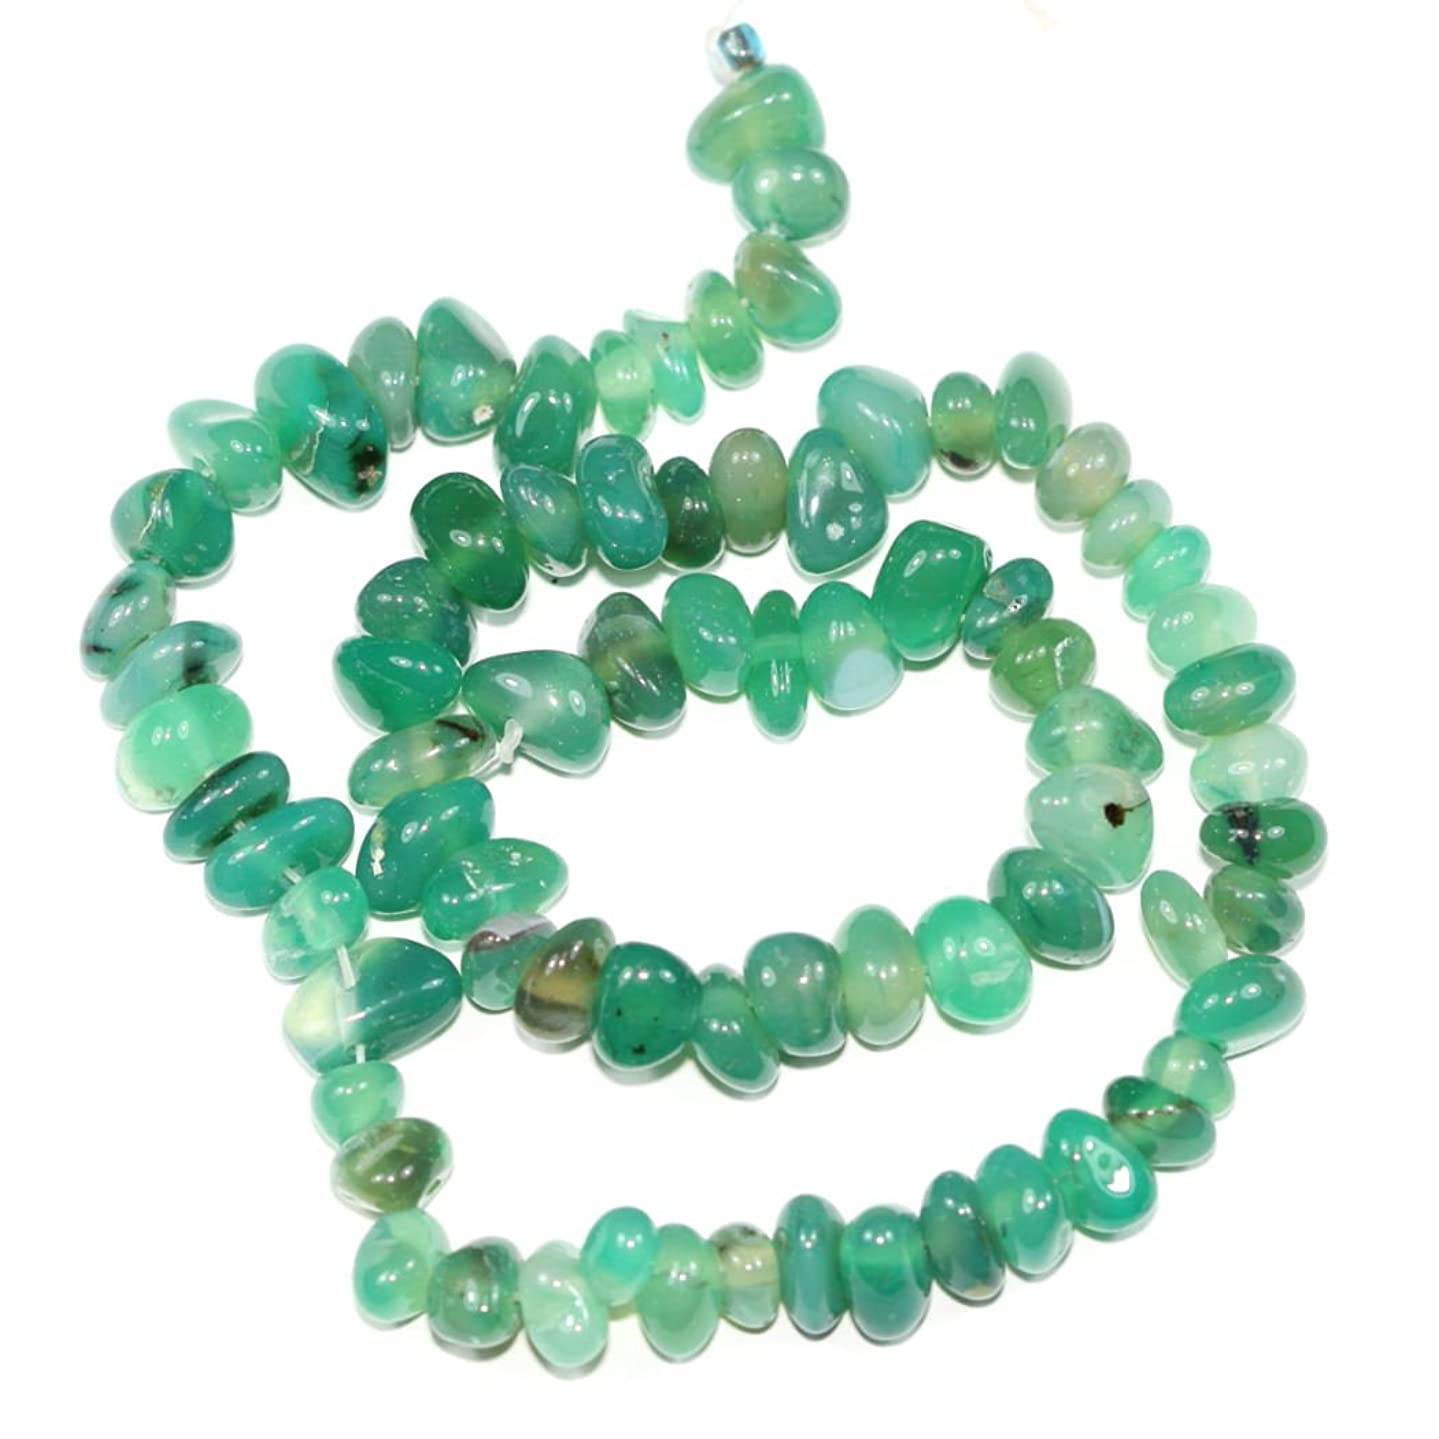 Top Quality Natural Green Agate Gemstones Smooth Pebble Beads Center Drilled Free-form Loose Beads ~10x8mm beads (~16